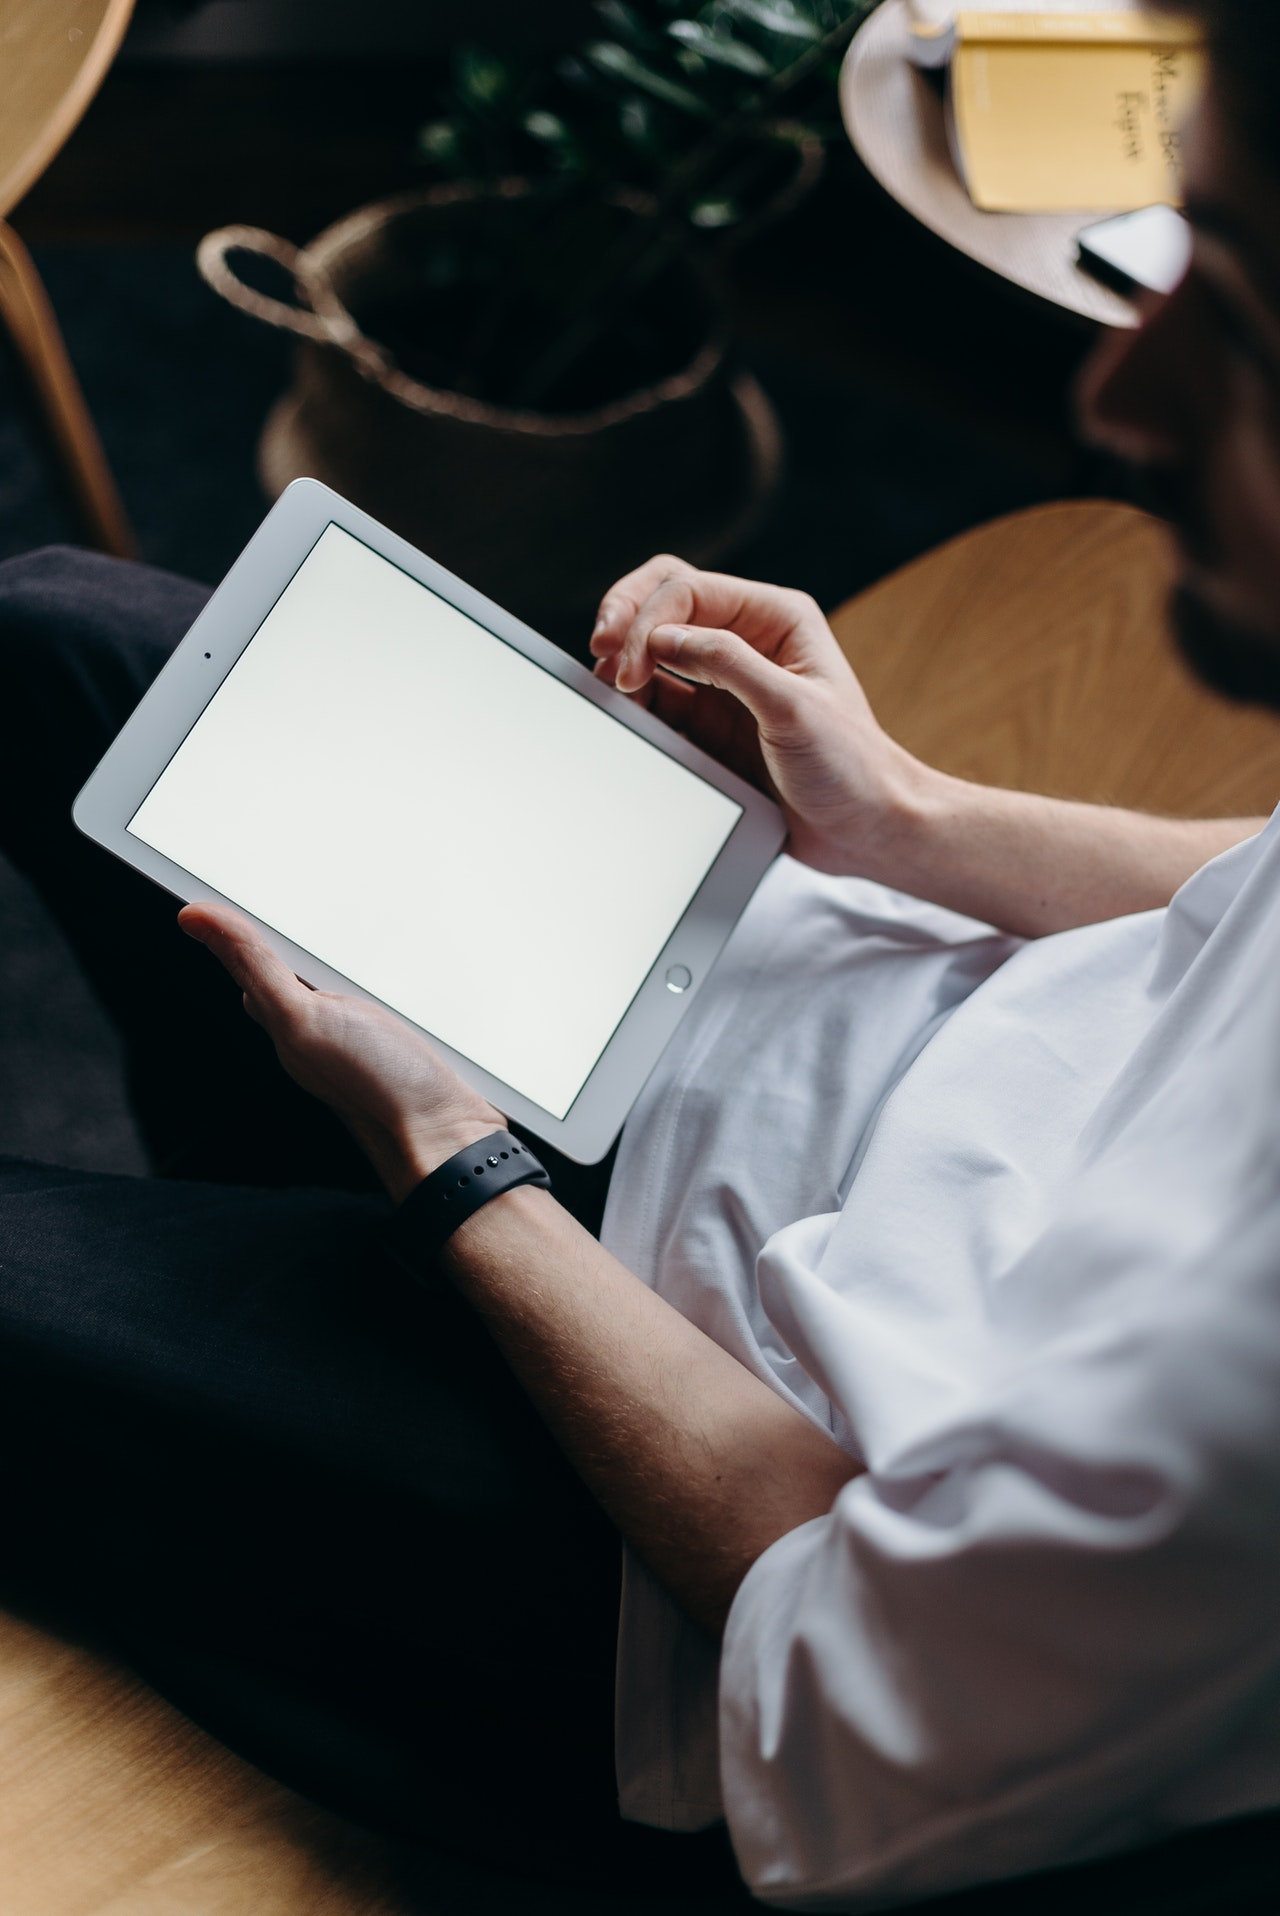 person working on ipad